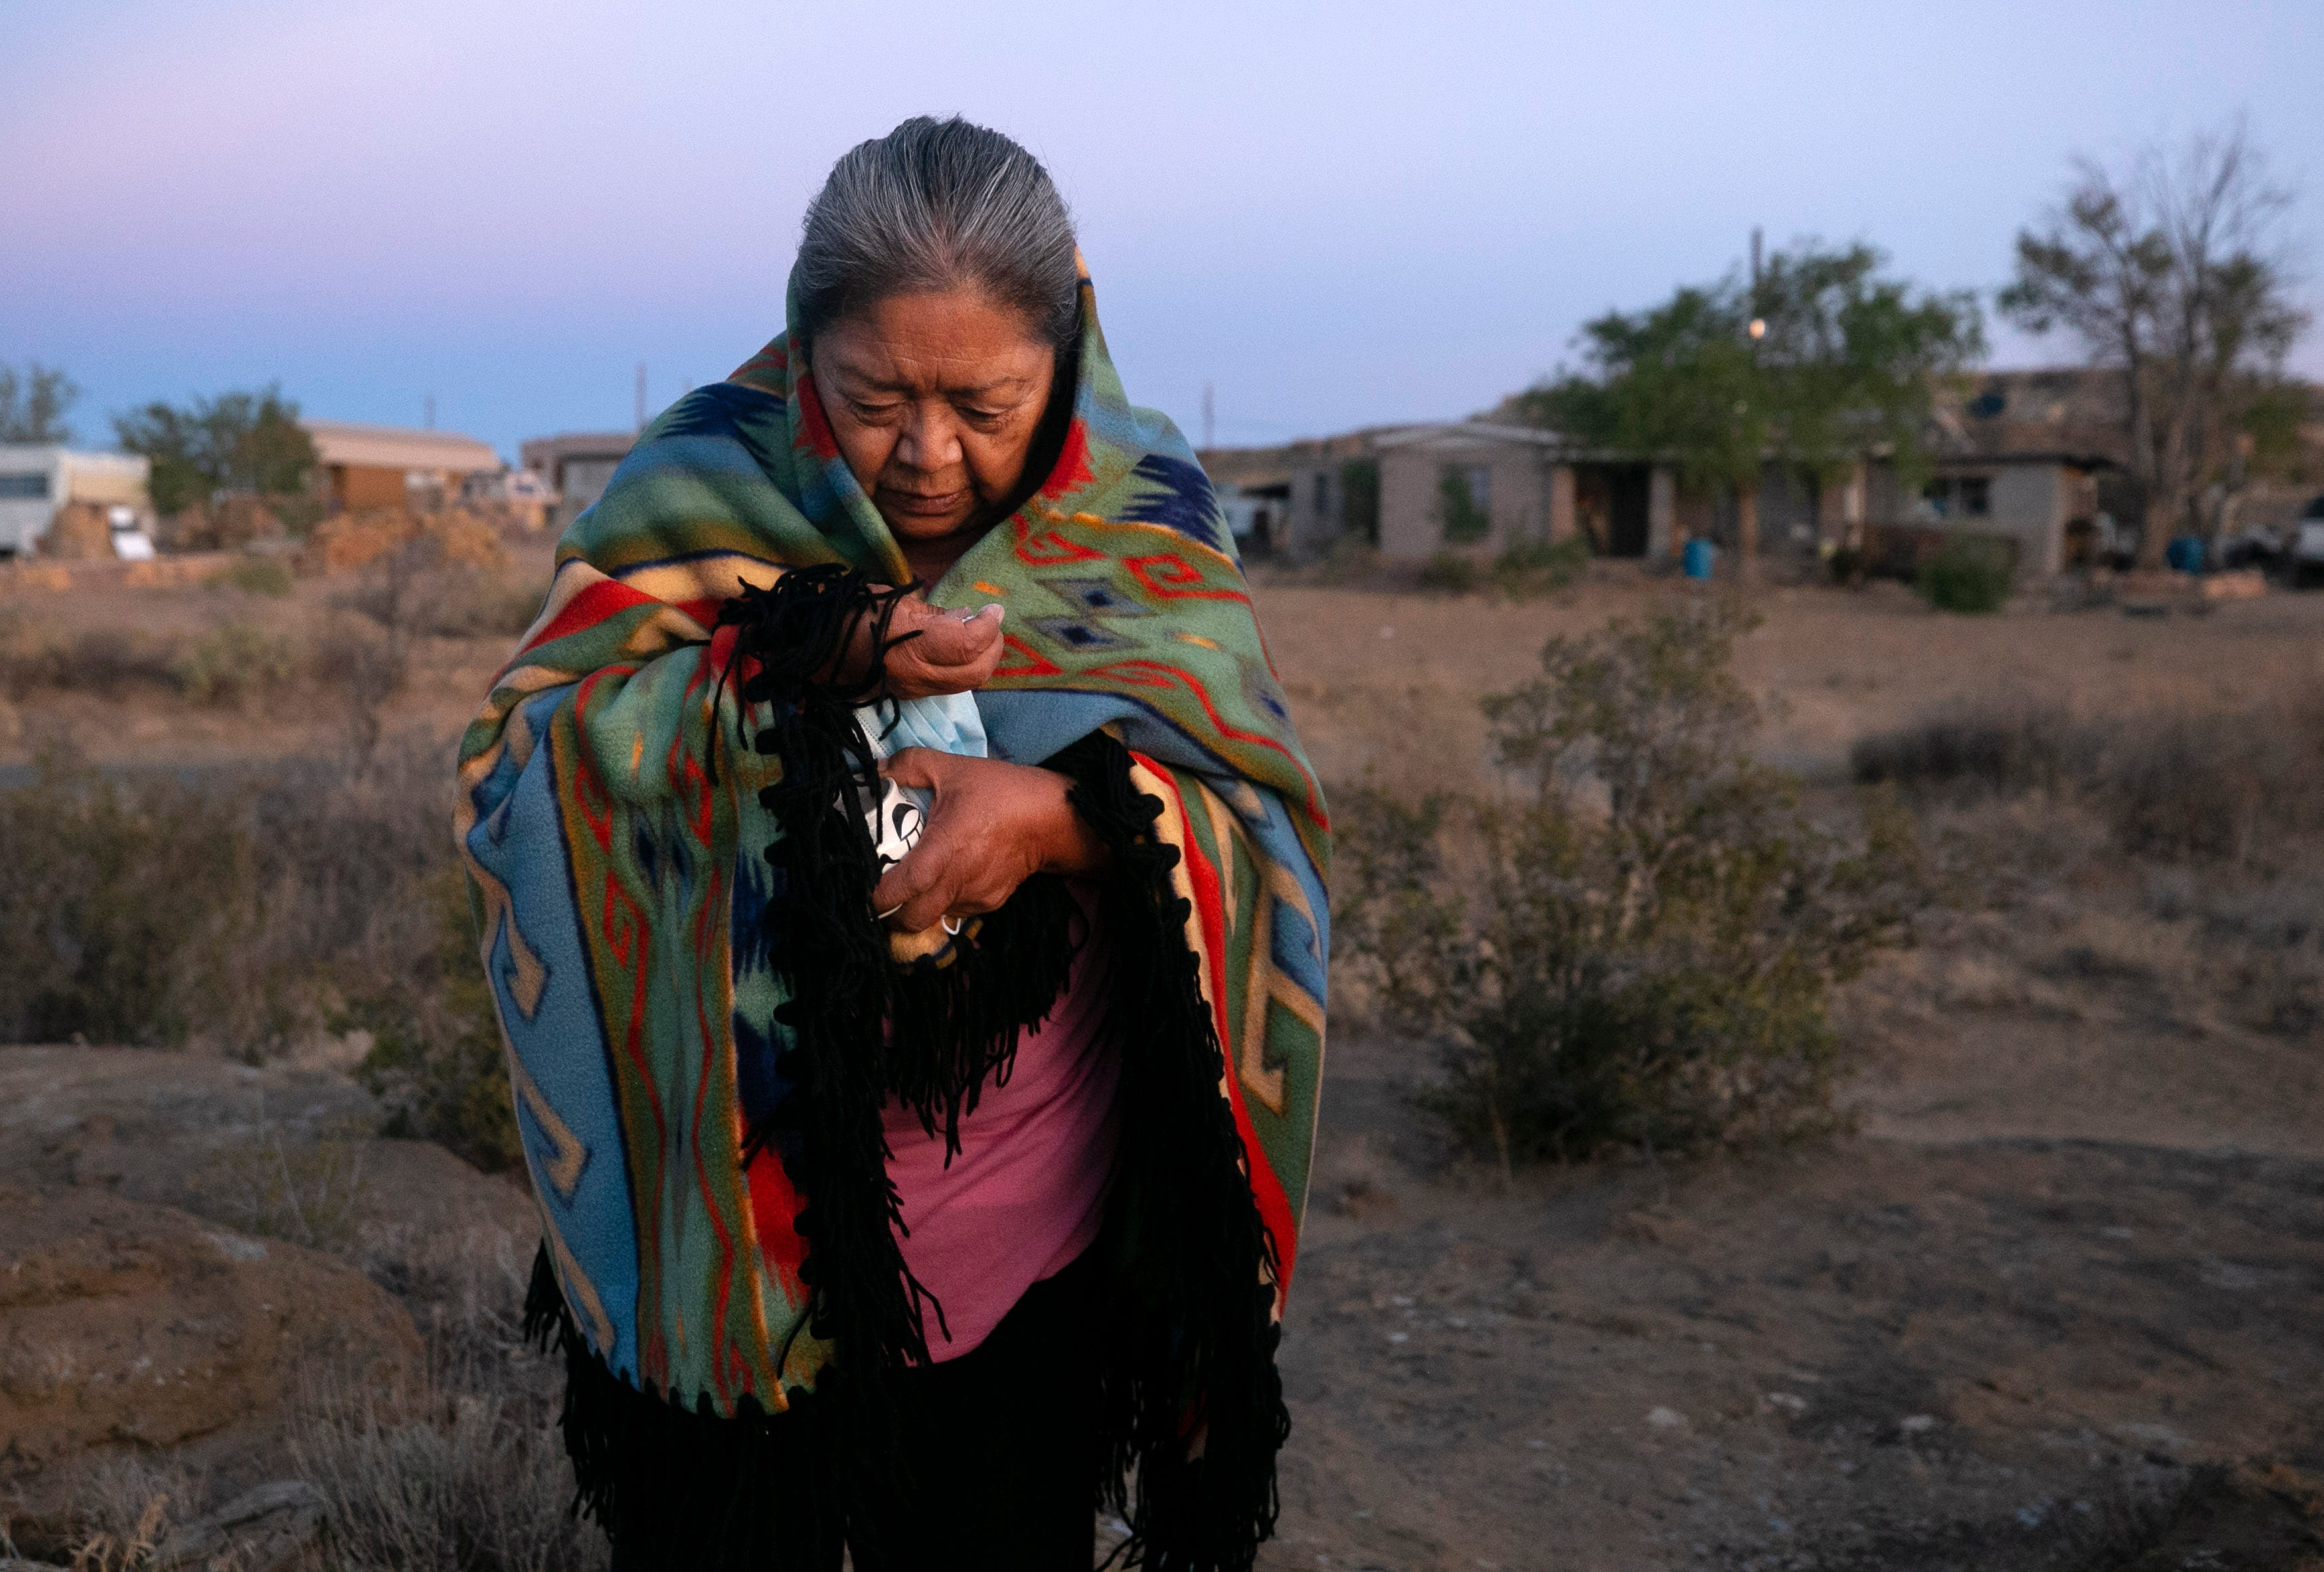 Beatrice Norton prays at sunrise while taking ground white corn in her hand in front of her home in Oraibi on the Hopi Reservation on Sept. 12, 2020.